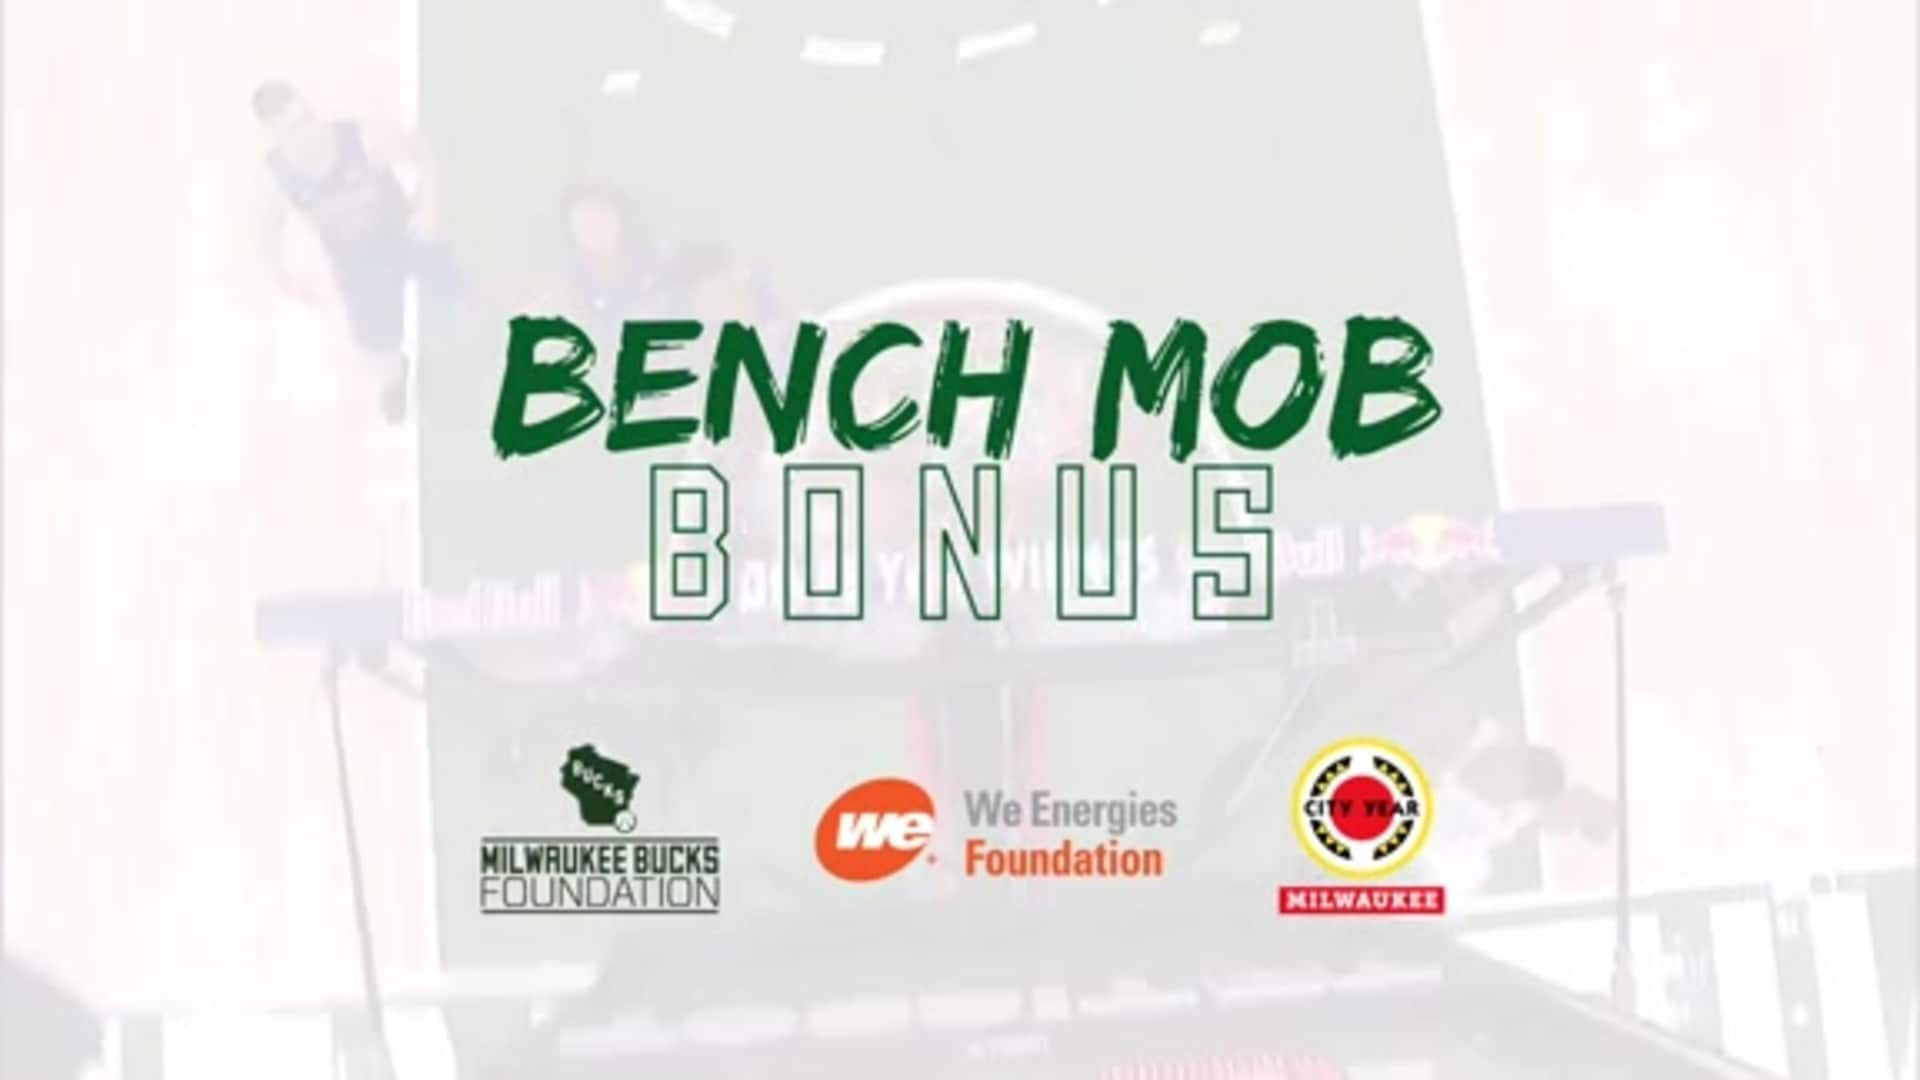 Bench Mob Bonus Gives Back To Milwaukee